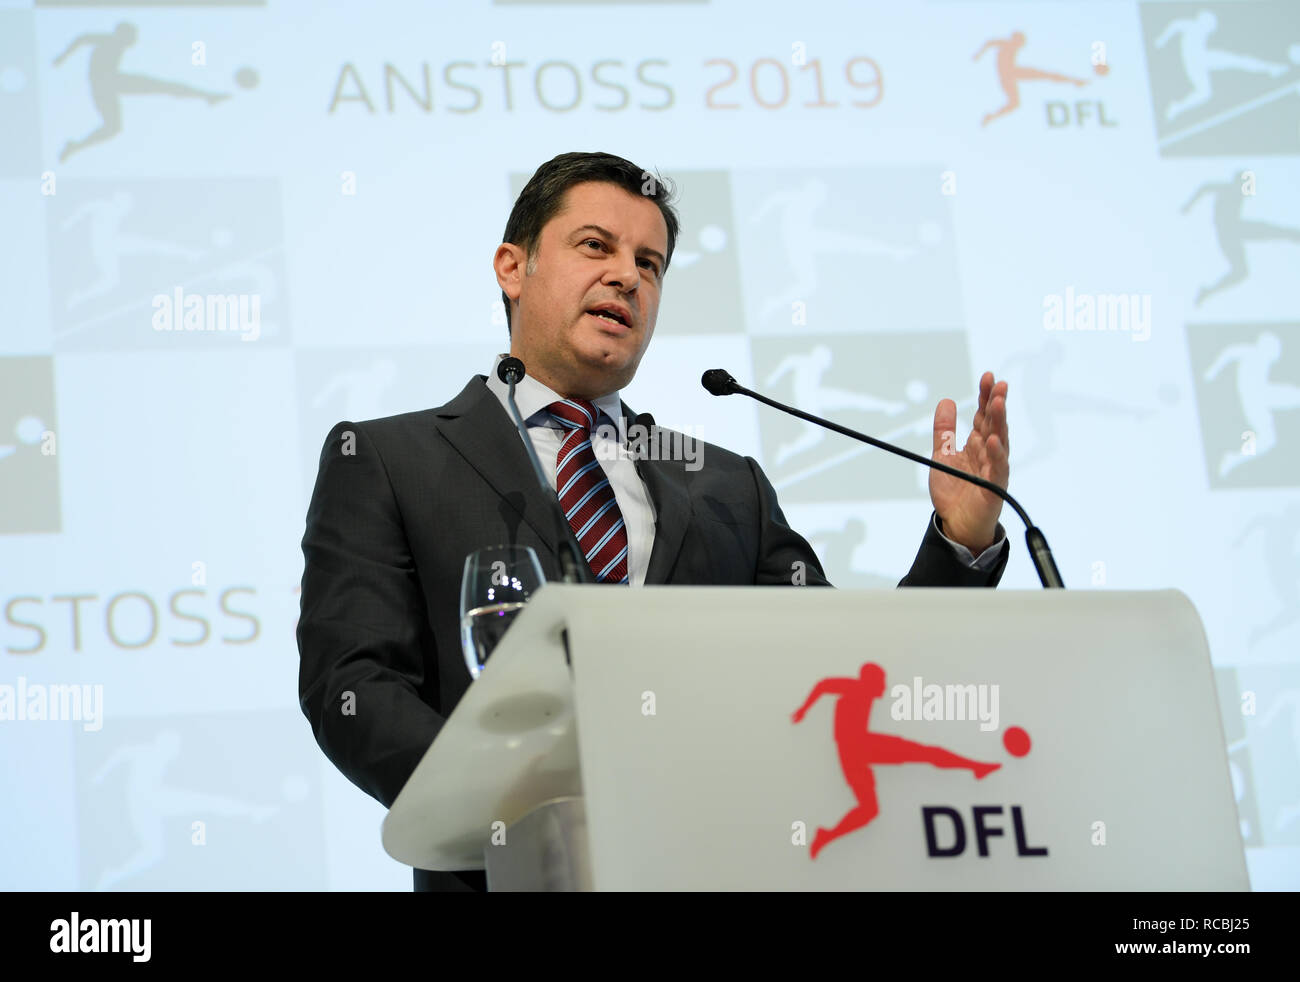 Frankfurt, Germany. 15 January 2019, Christian Seifert, Managing Director of the German Football League (DFL), speaks at the New Year's Reception of the German Football League. Photo: Arne Dedert/dpa Credit: dpa picture alliance/Alamy Live News - Stock Image